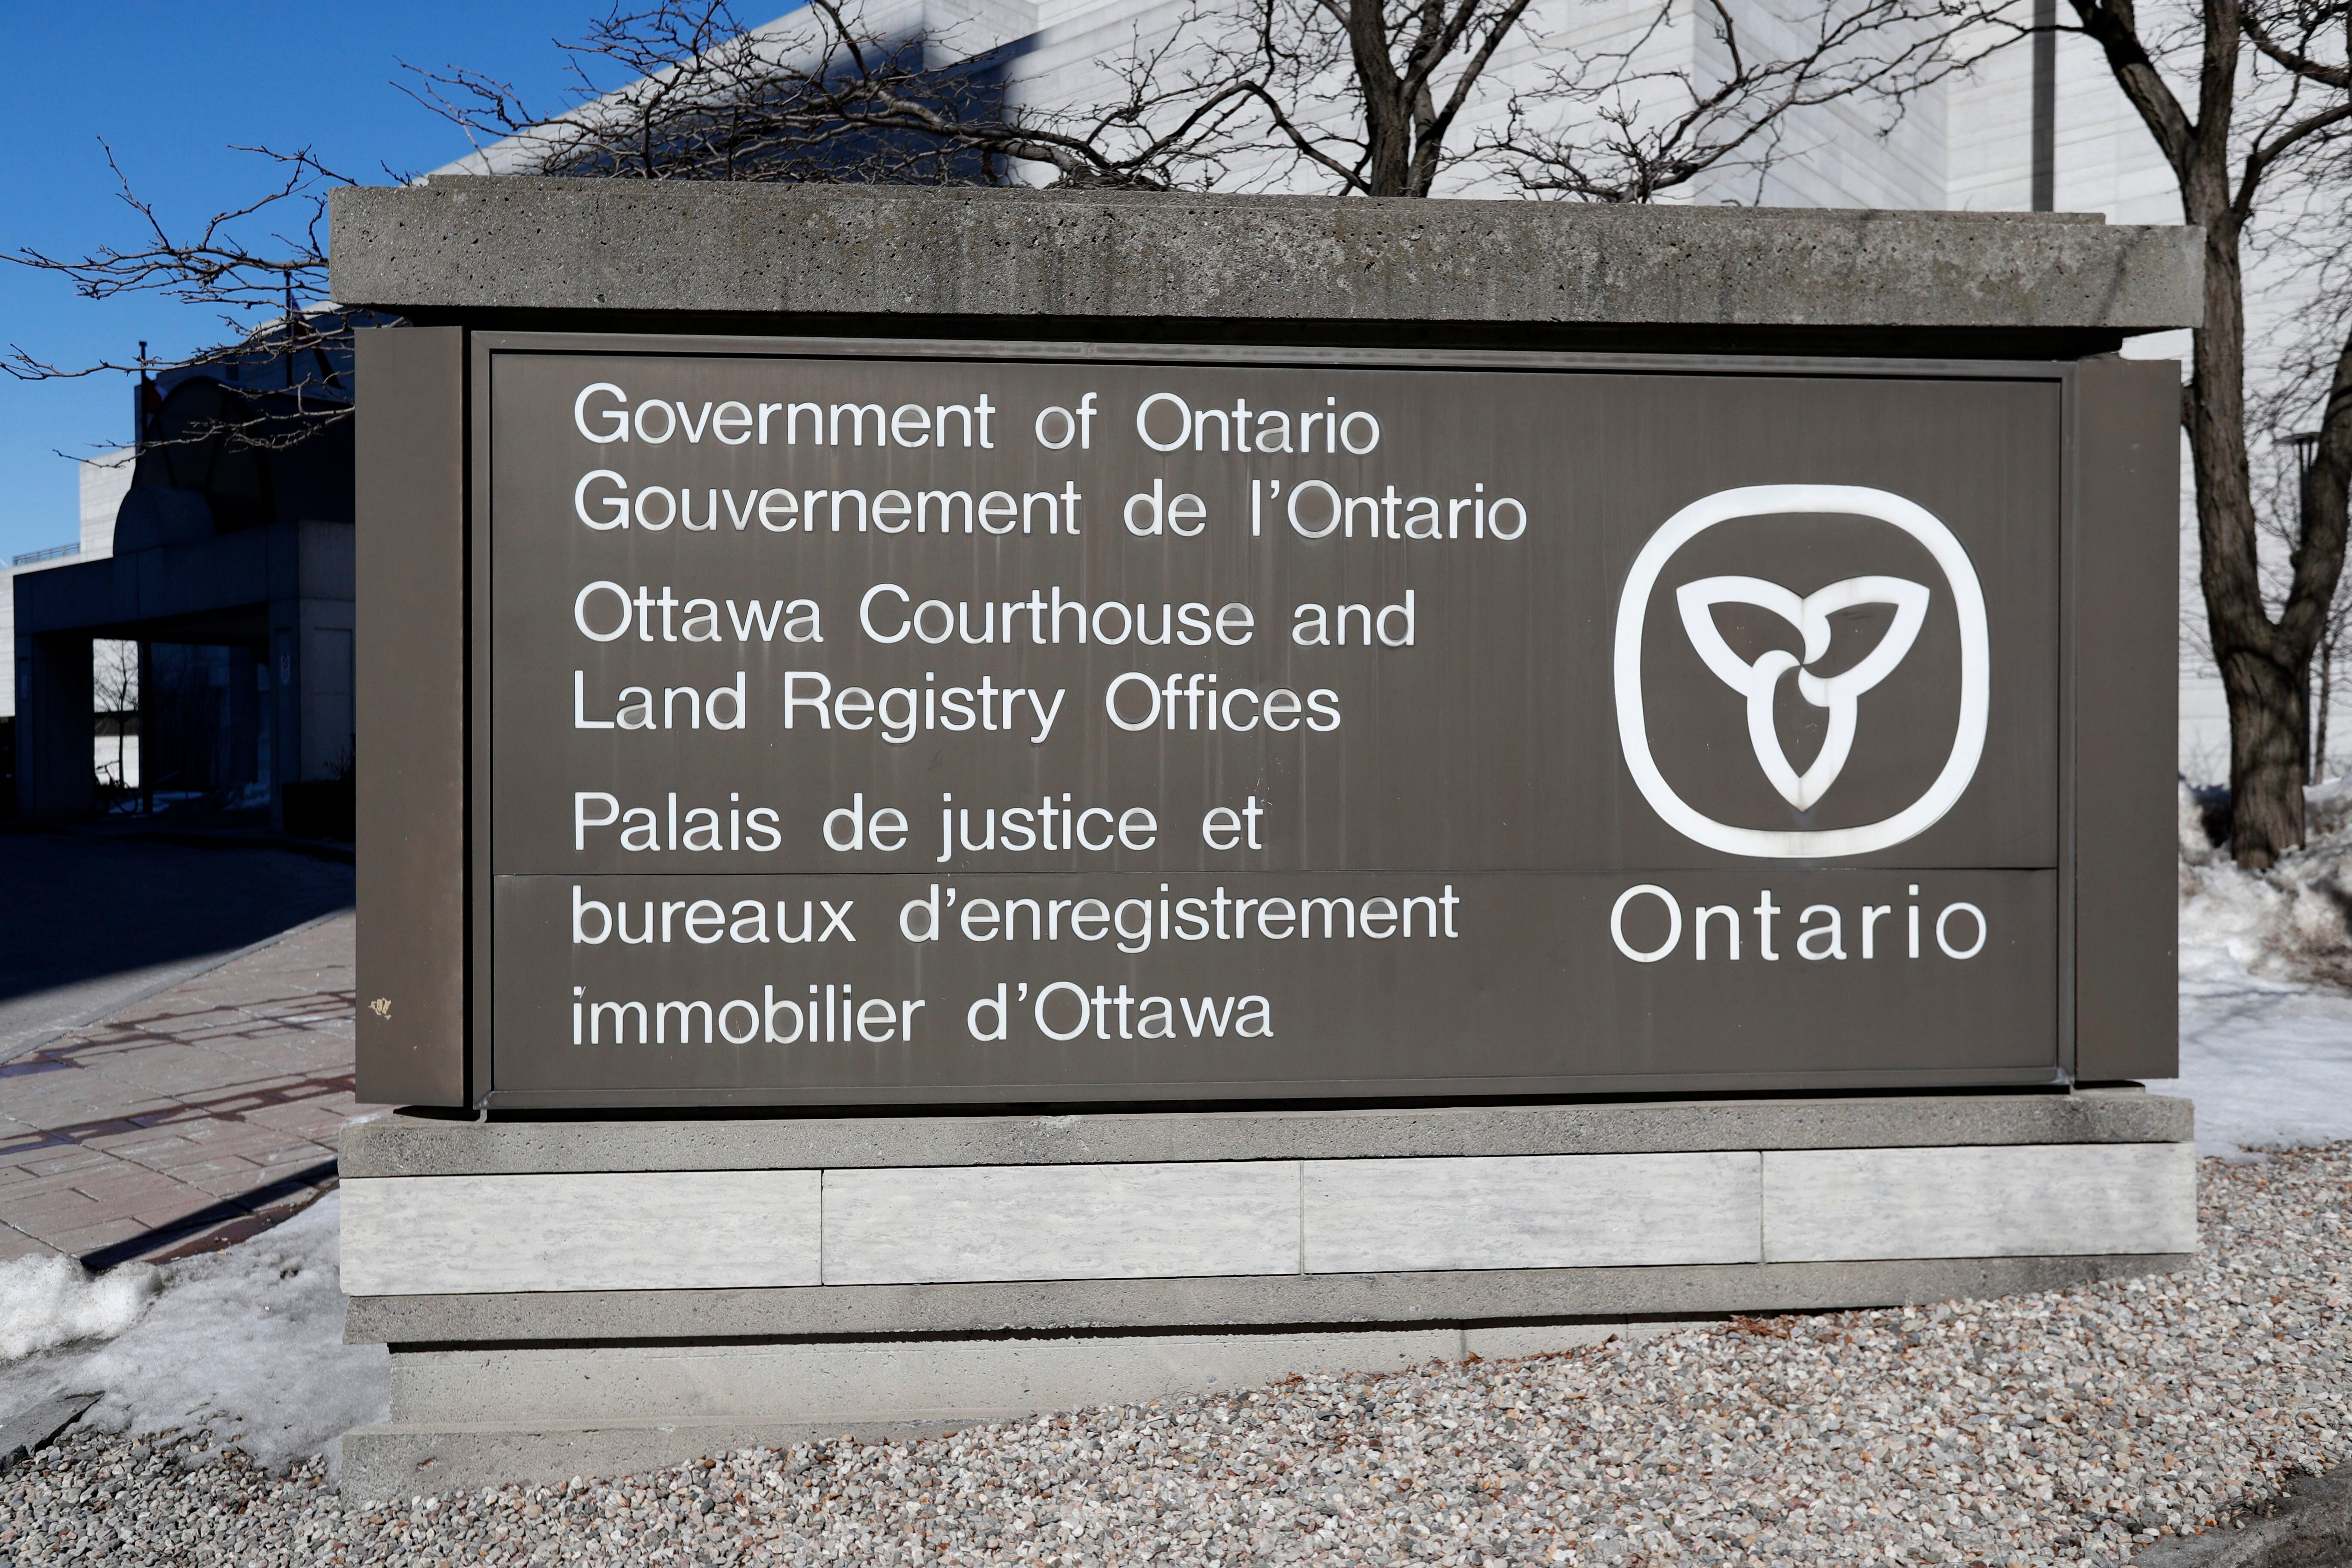 Criminal Charge For Ottawa-Area Server 'Very Uncommon':